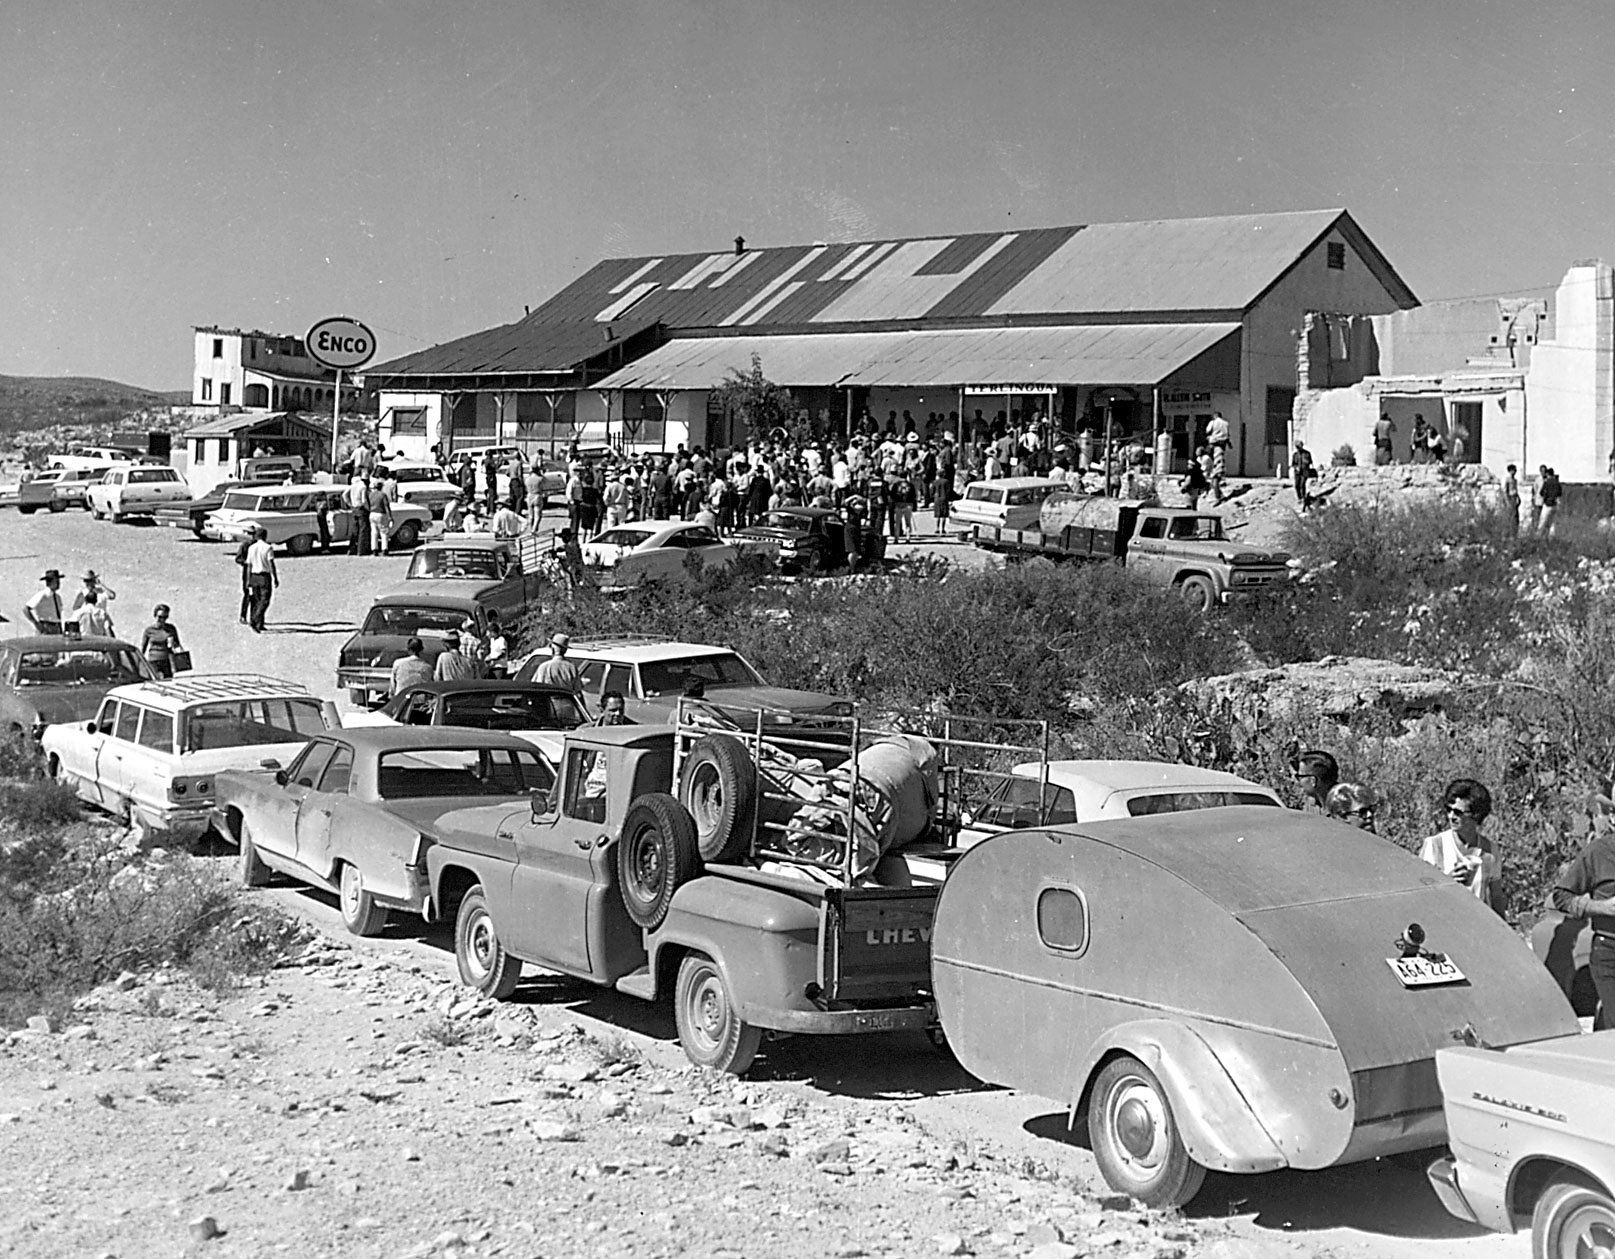 Terlingua has been the chili cook-off capital of Texas since the 1960s.